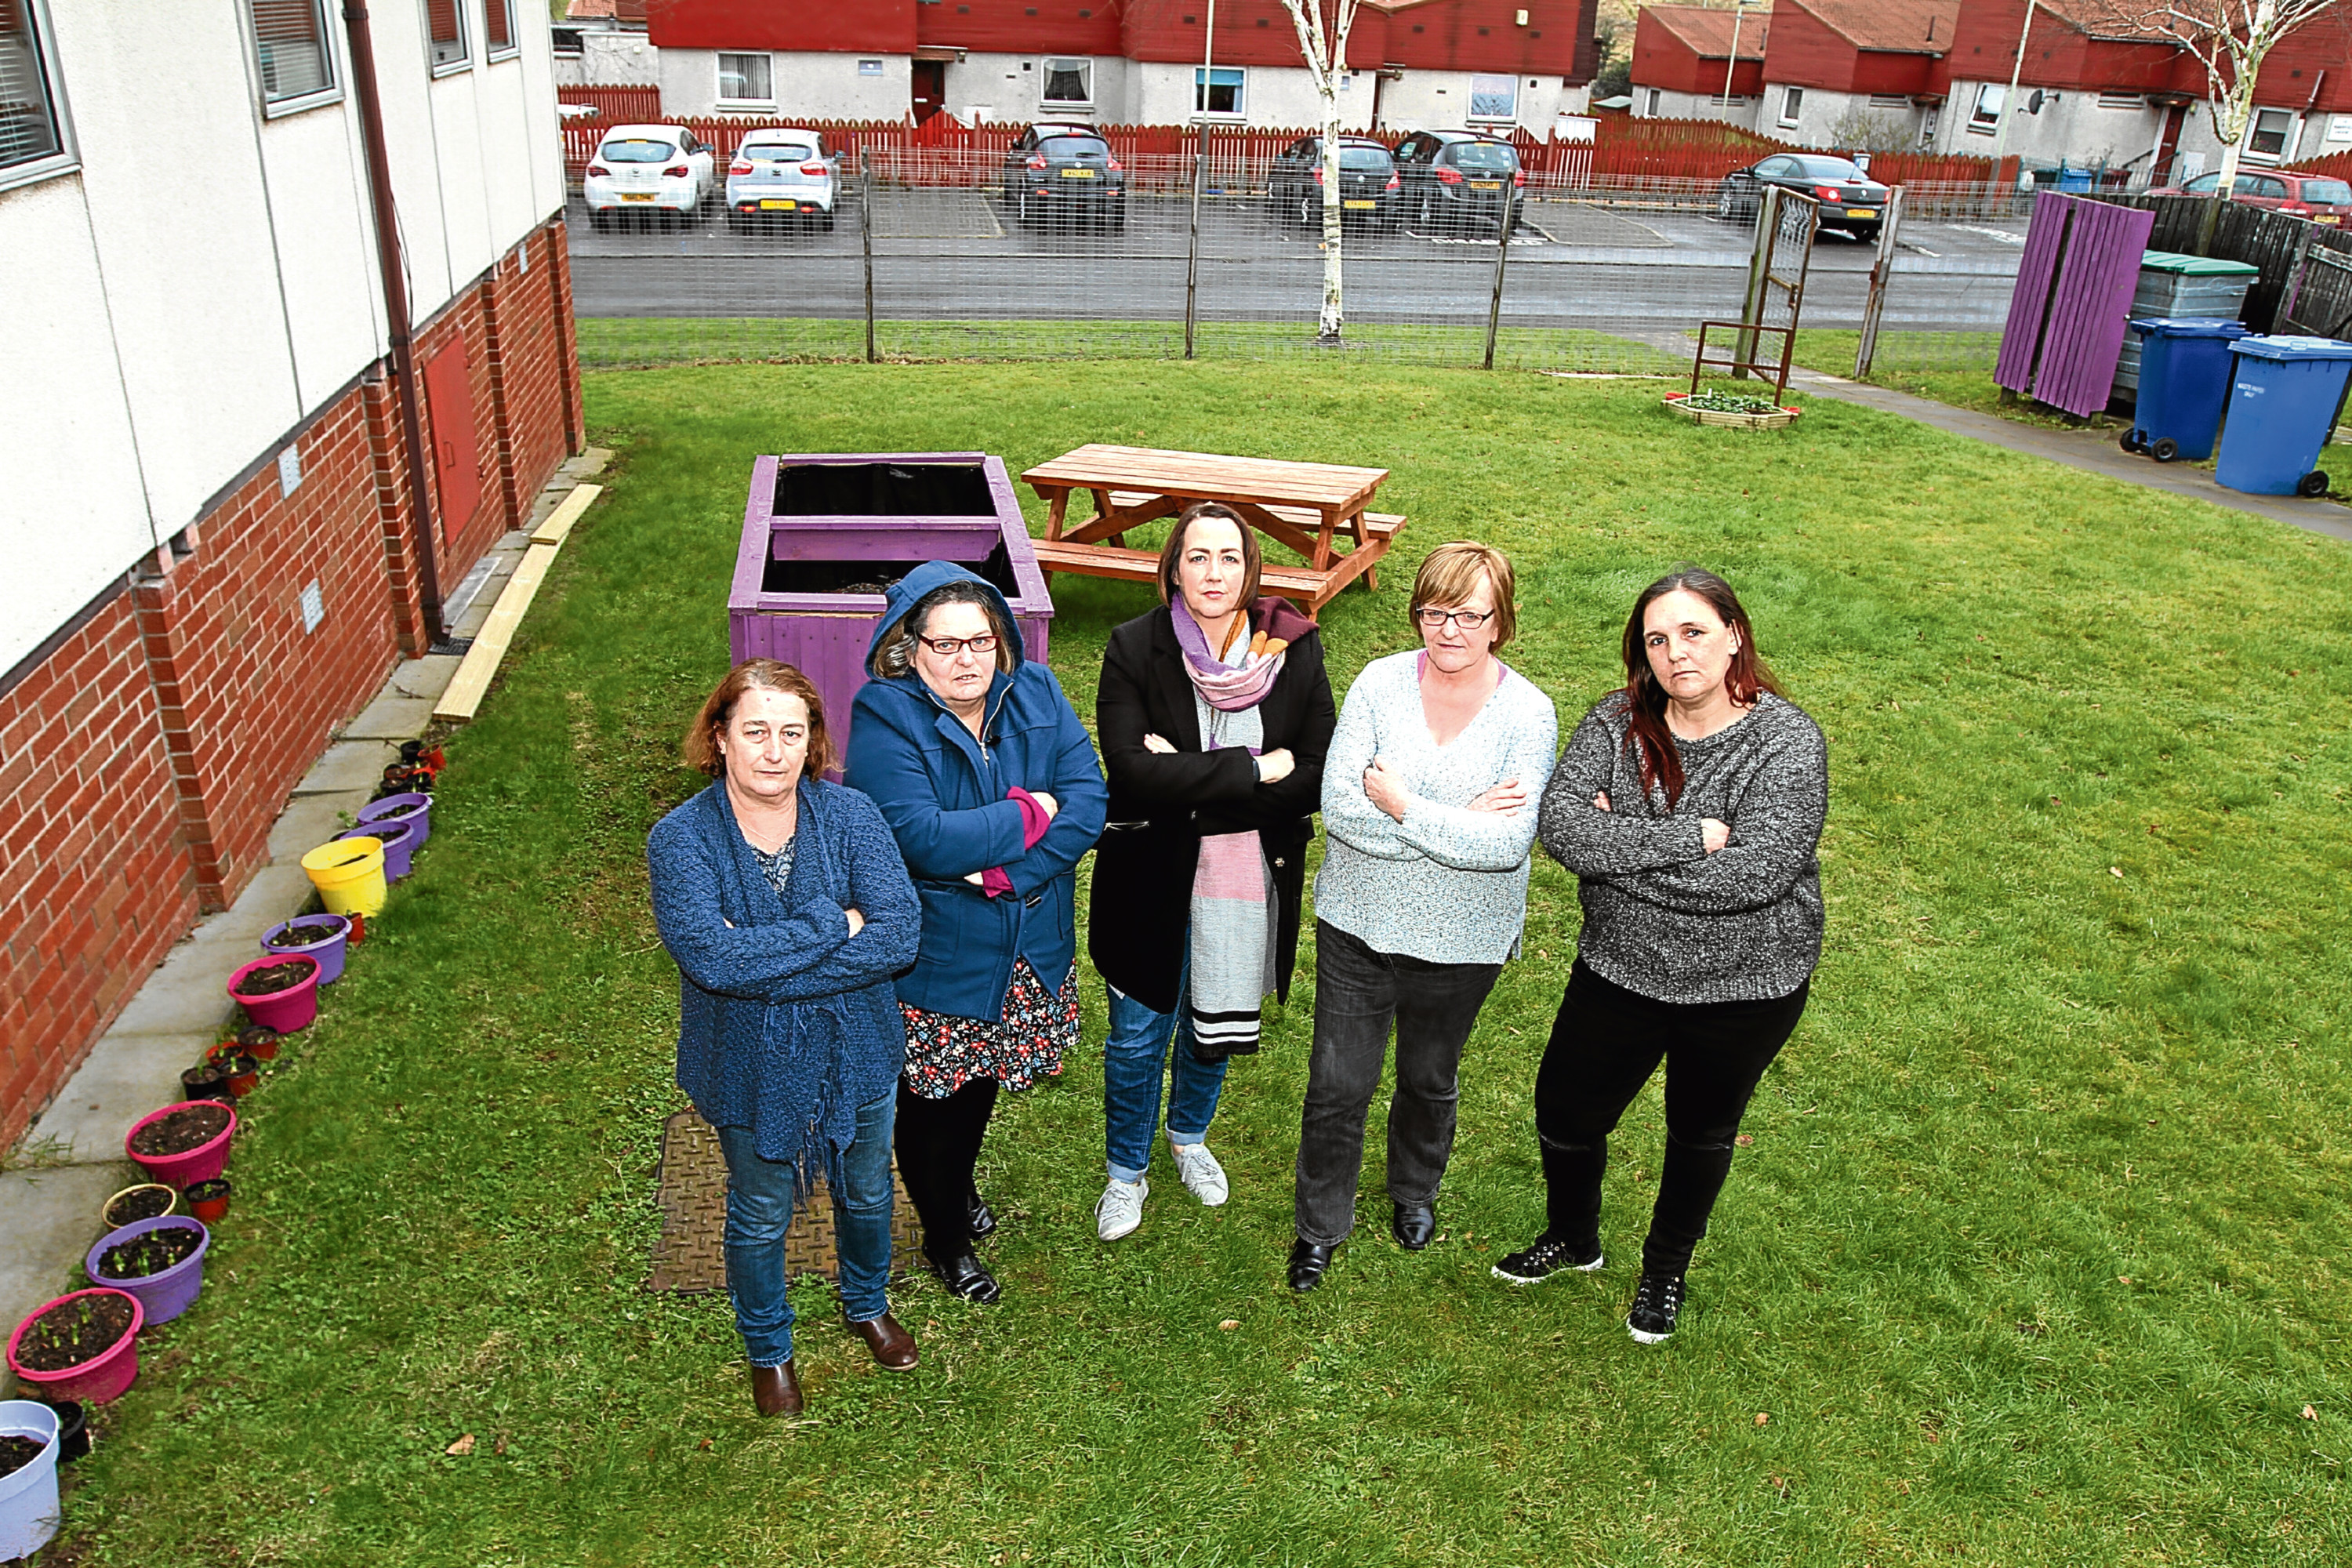 Staff members Sandra Stewart, Philippa Lyttle, Emma Beatt, Anita Jamieson and Tammie Brown at the area in the garden where the bench used to be